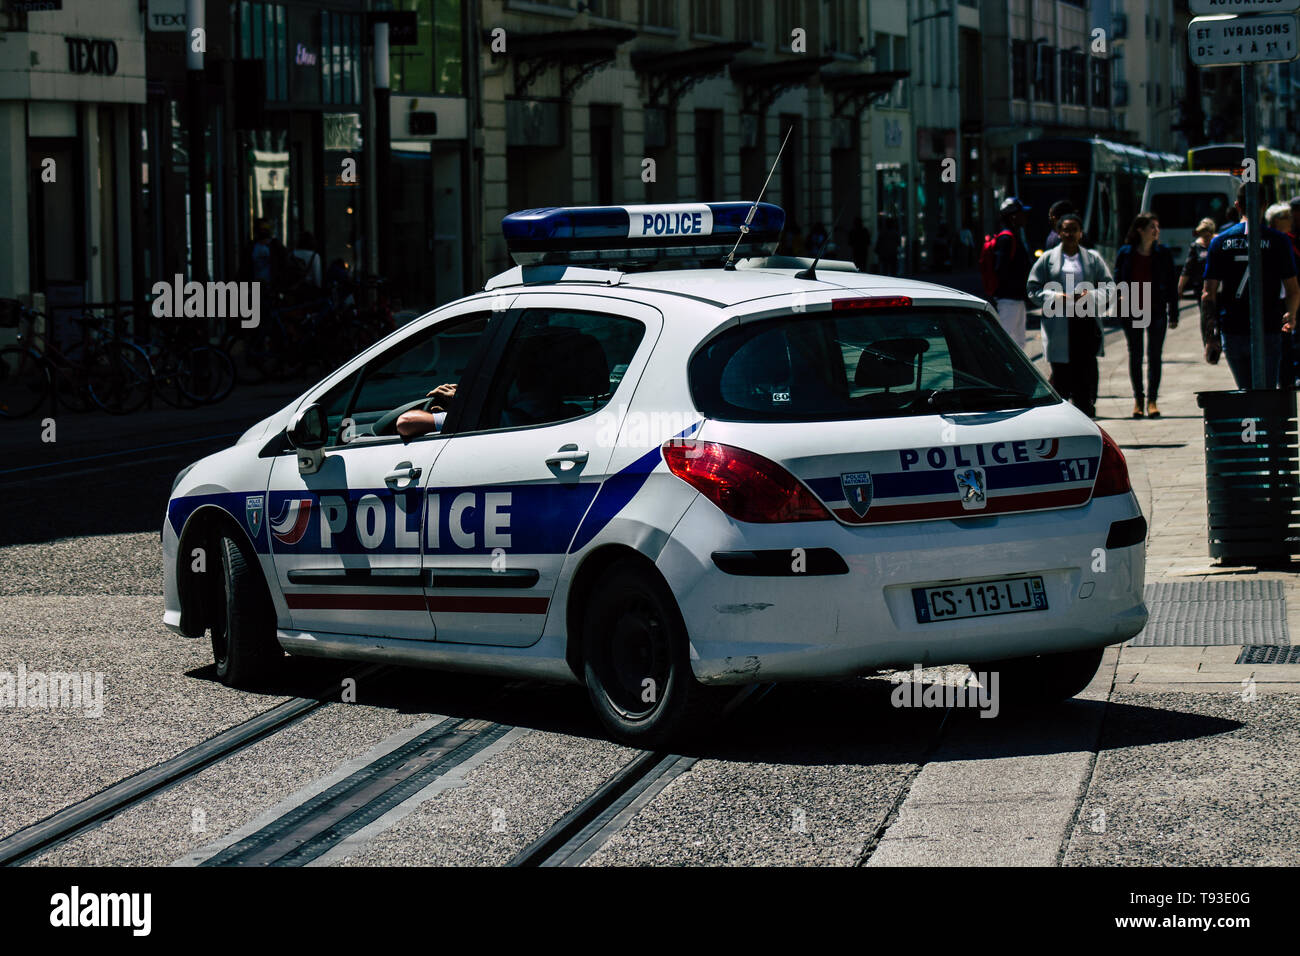 French Police Car Stock Photos French Police Car Stock Images Alamy